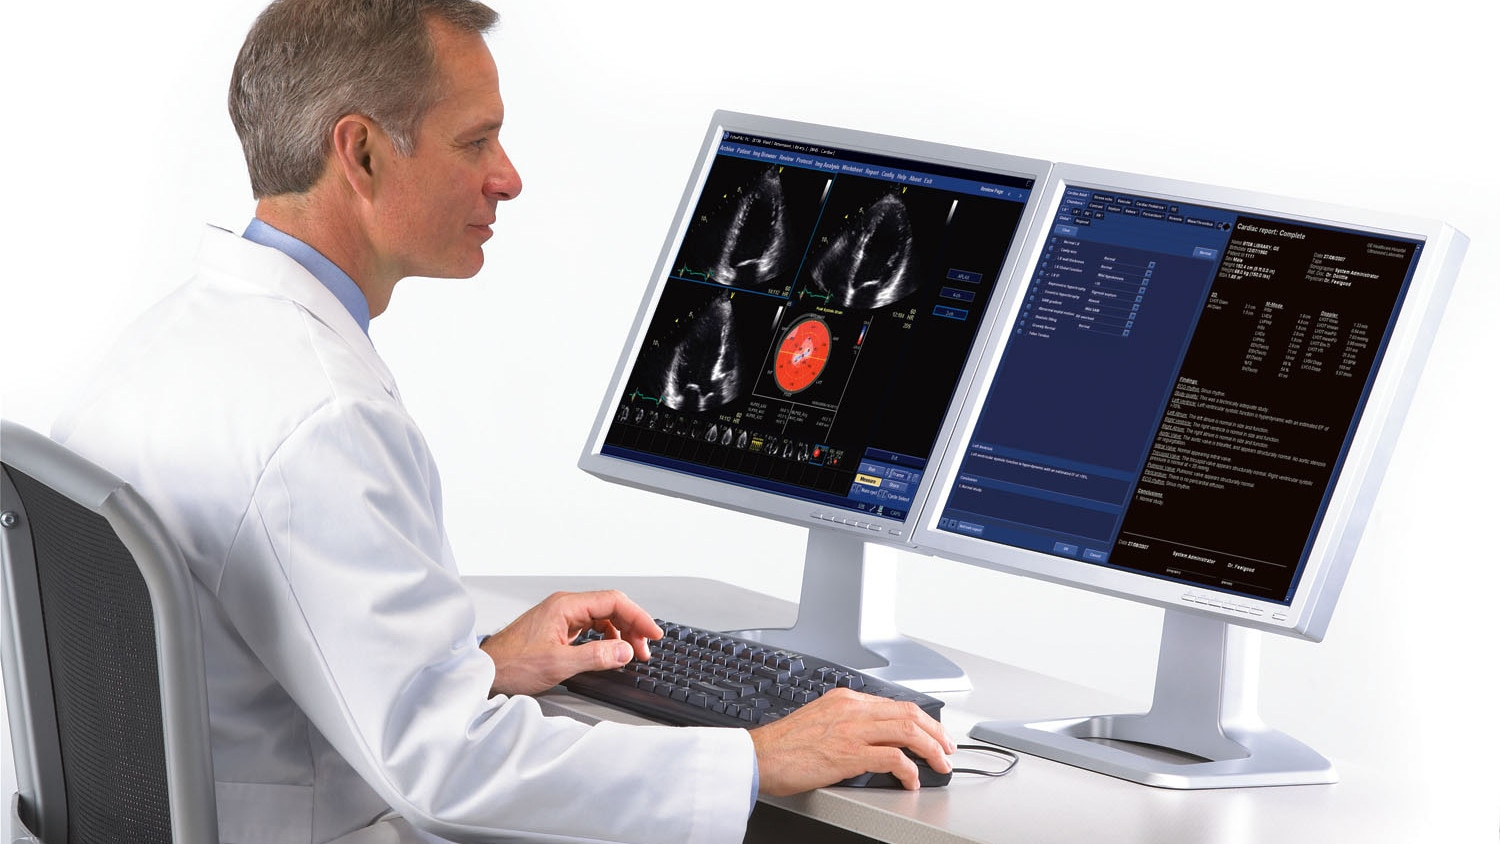 product-product-categories-ultrasound-echopac-echopac_clinician_viewingmonitors.jpg